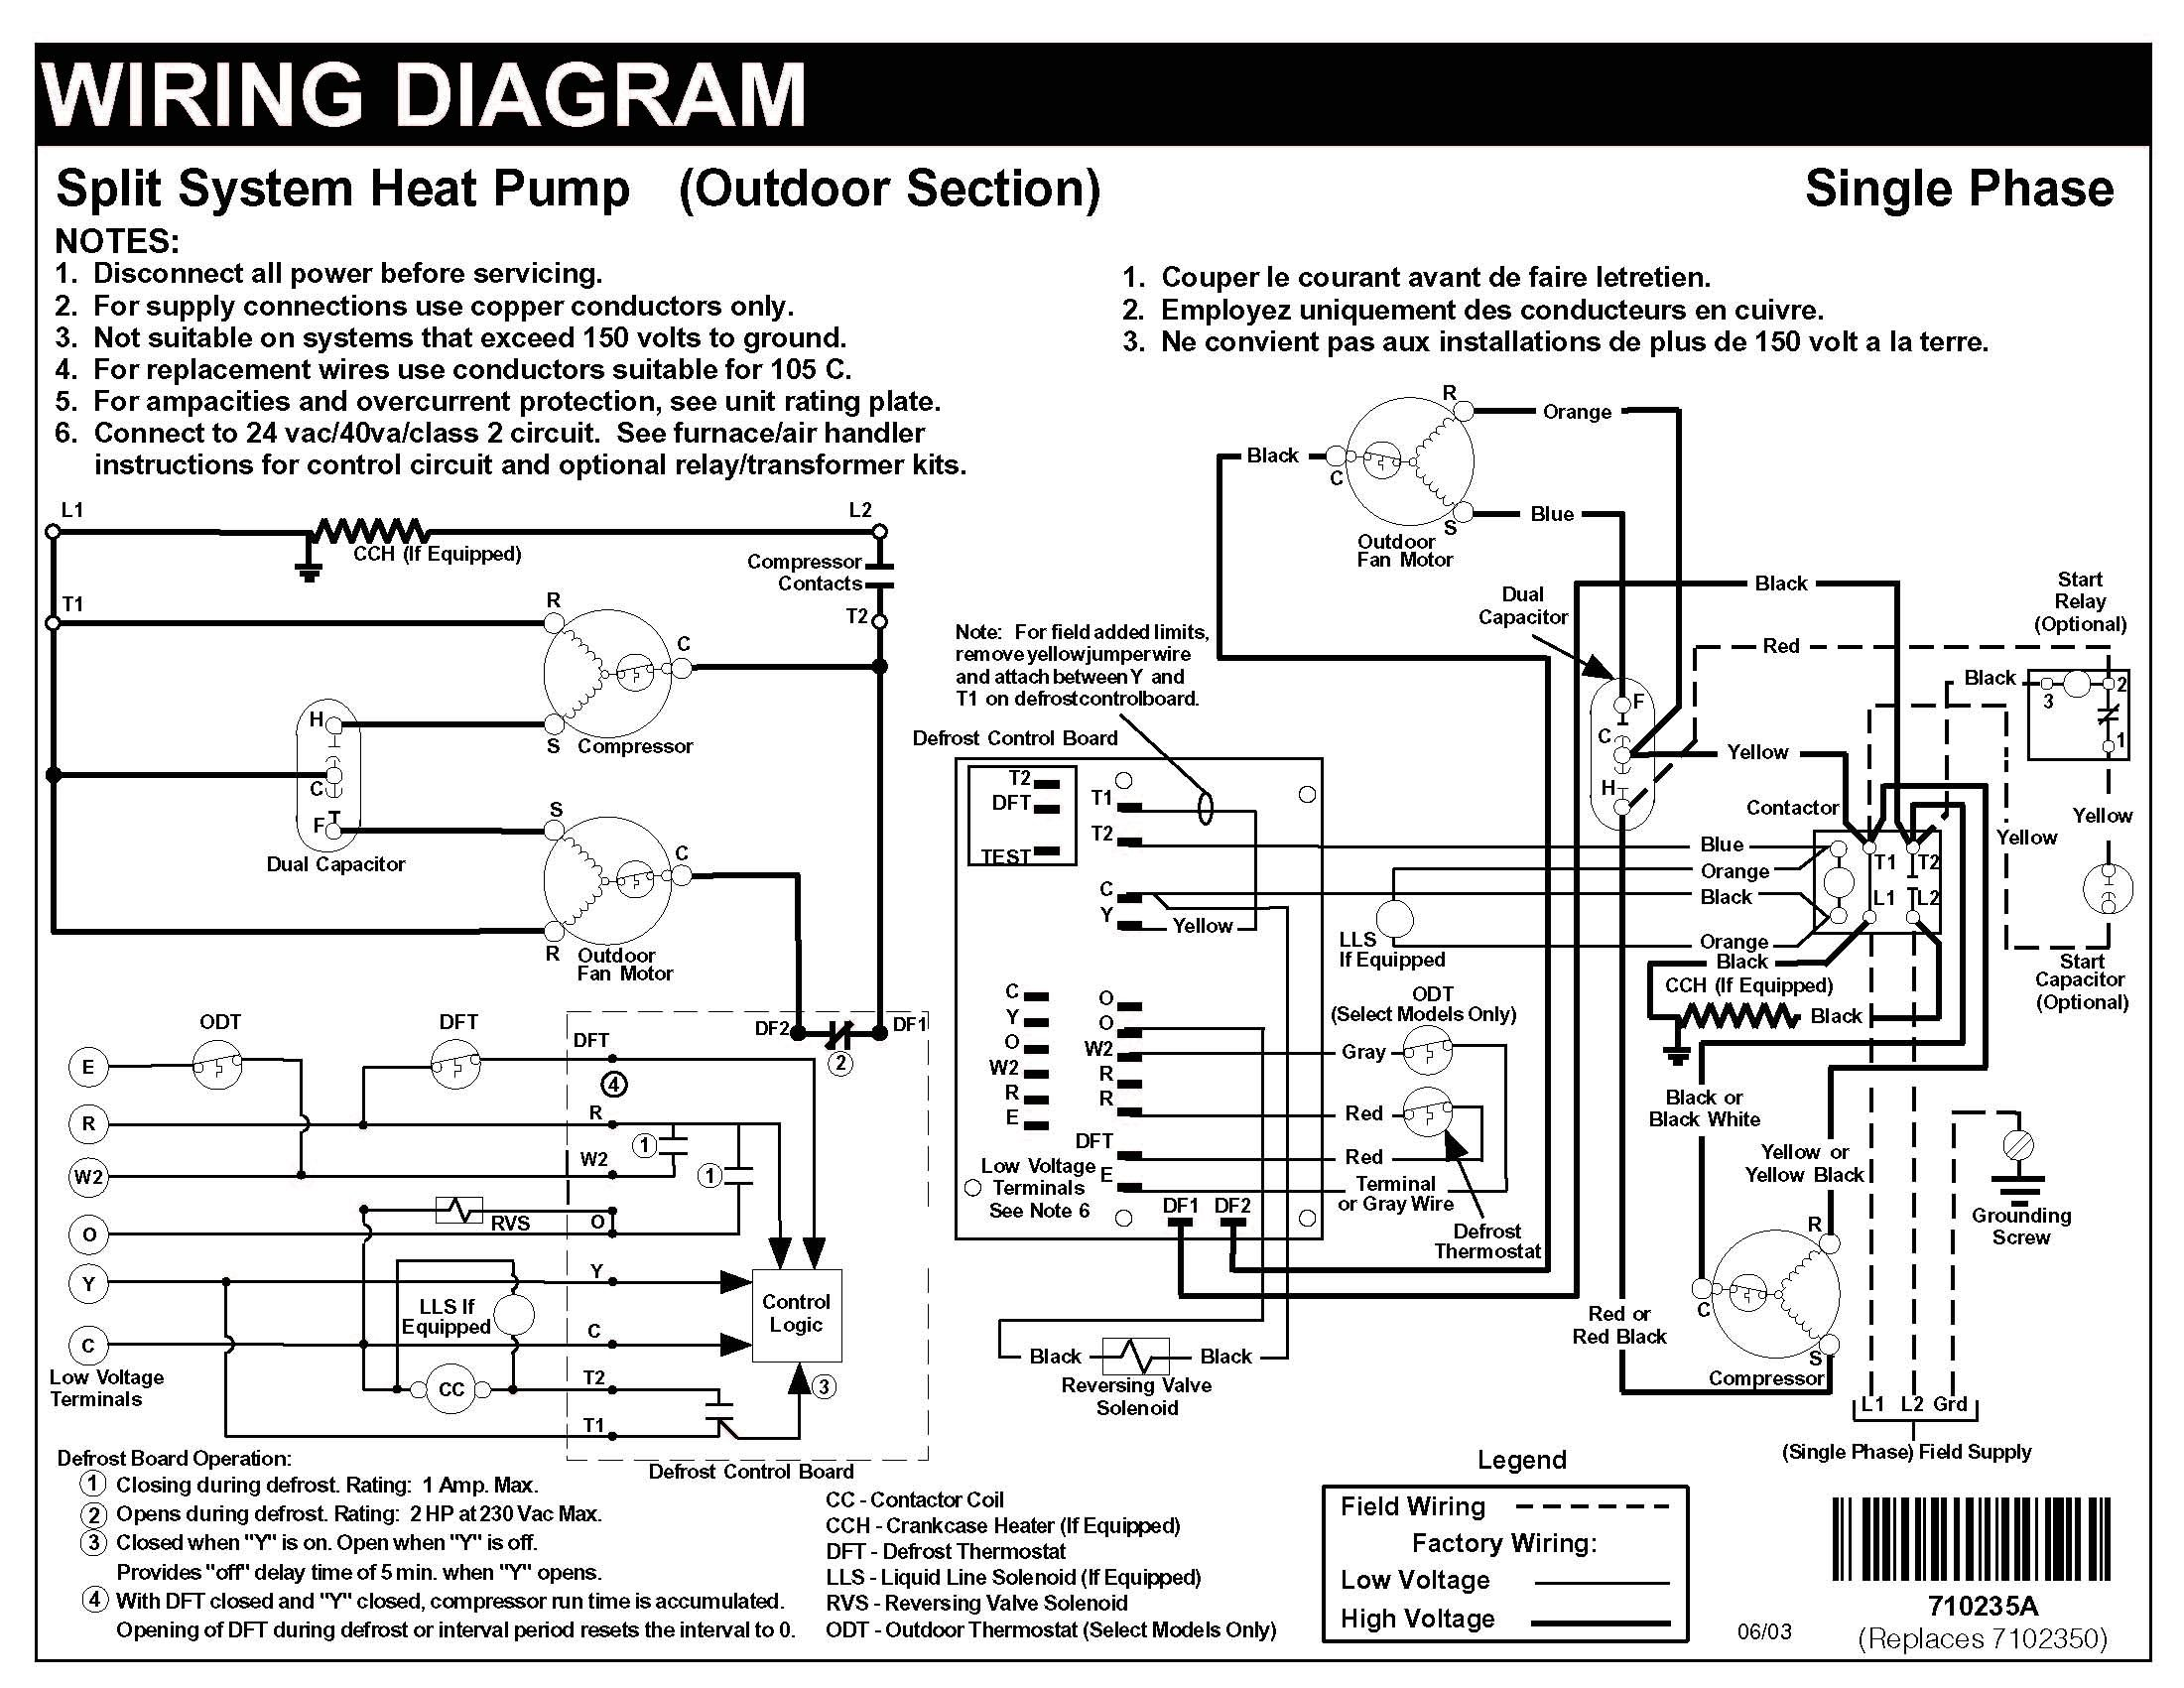 e08d295e6be2ee8be1bef44ac29add79 lennox ac wiring diagram premium coleman compressor parts diagram miami heat pump wiring diagram at honlapkeszites.co